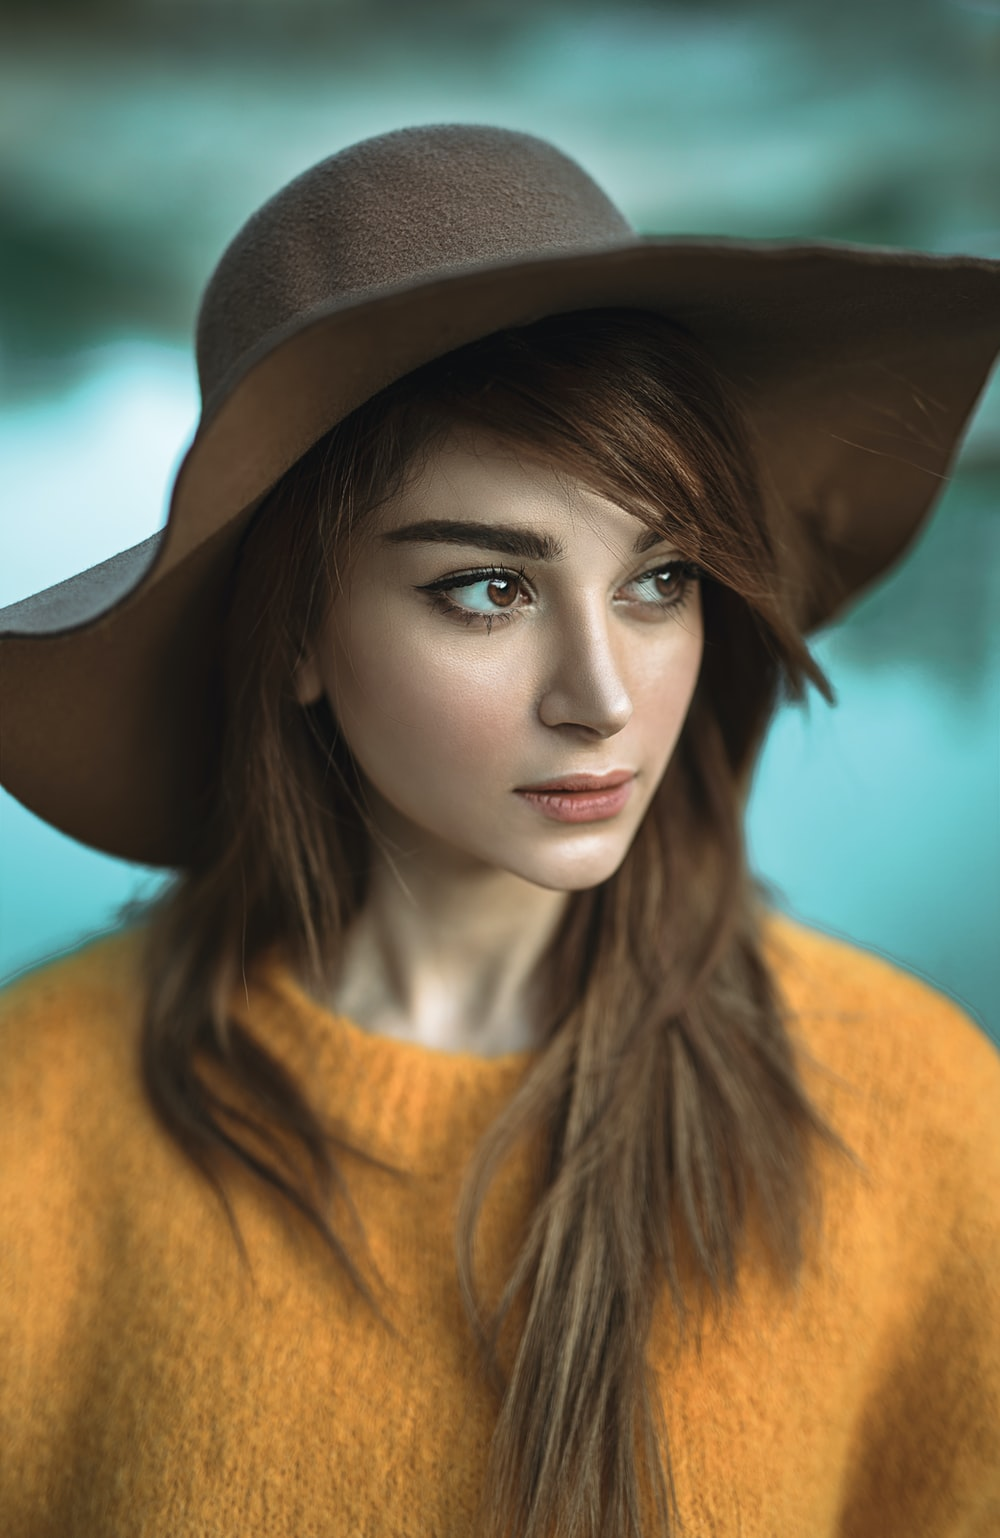 woman wearing yellow sweater and brown hat looking her right side